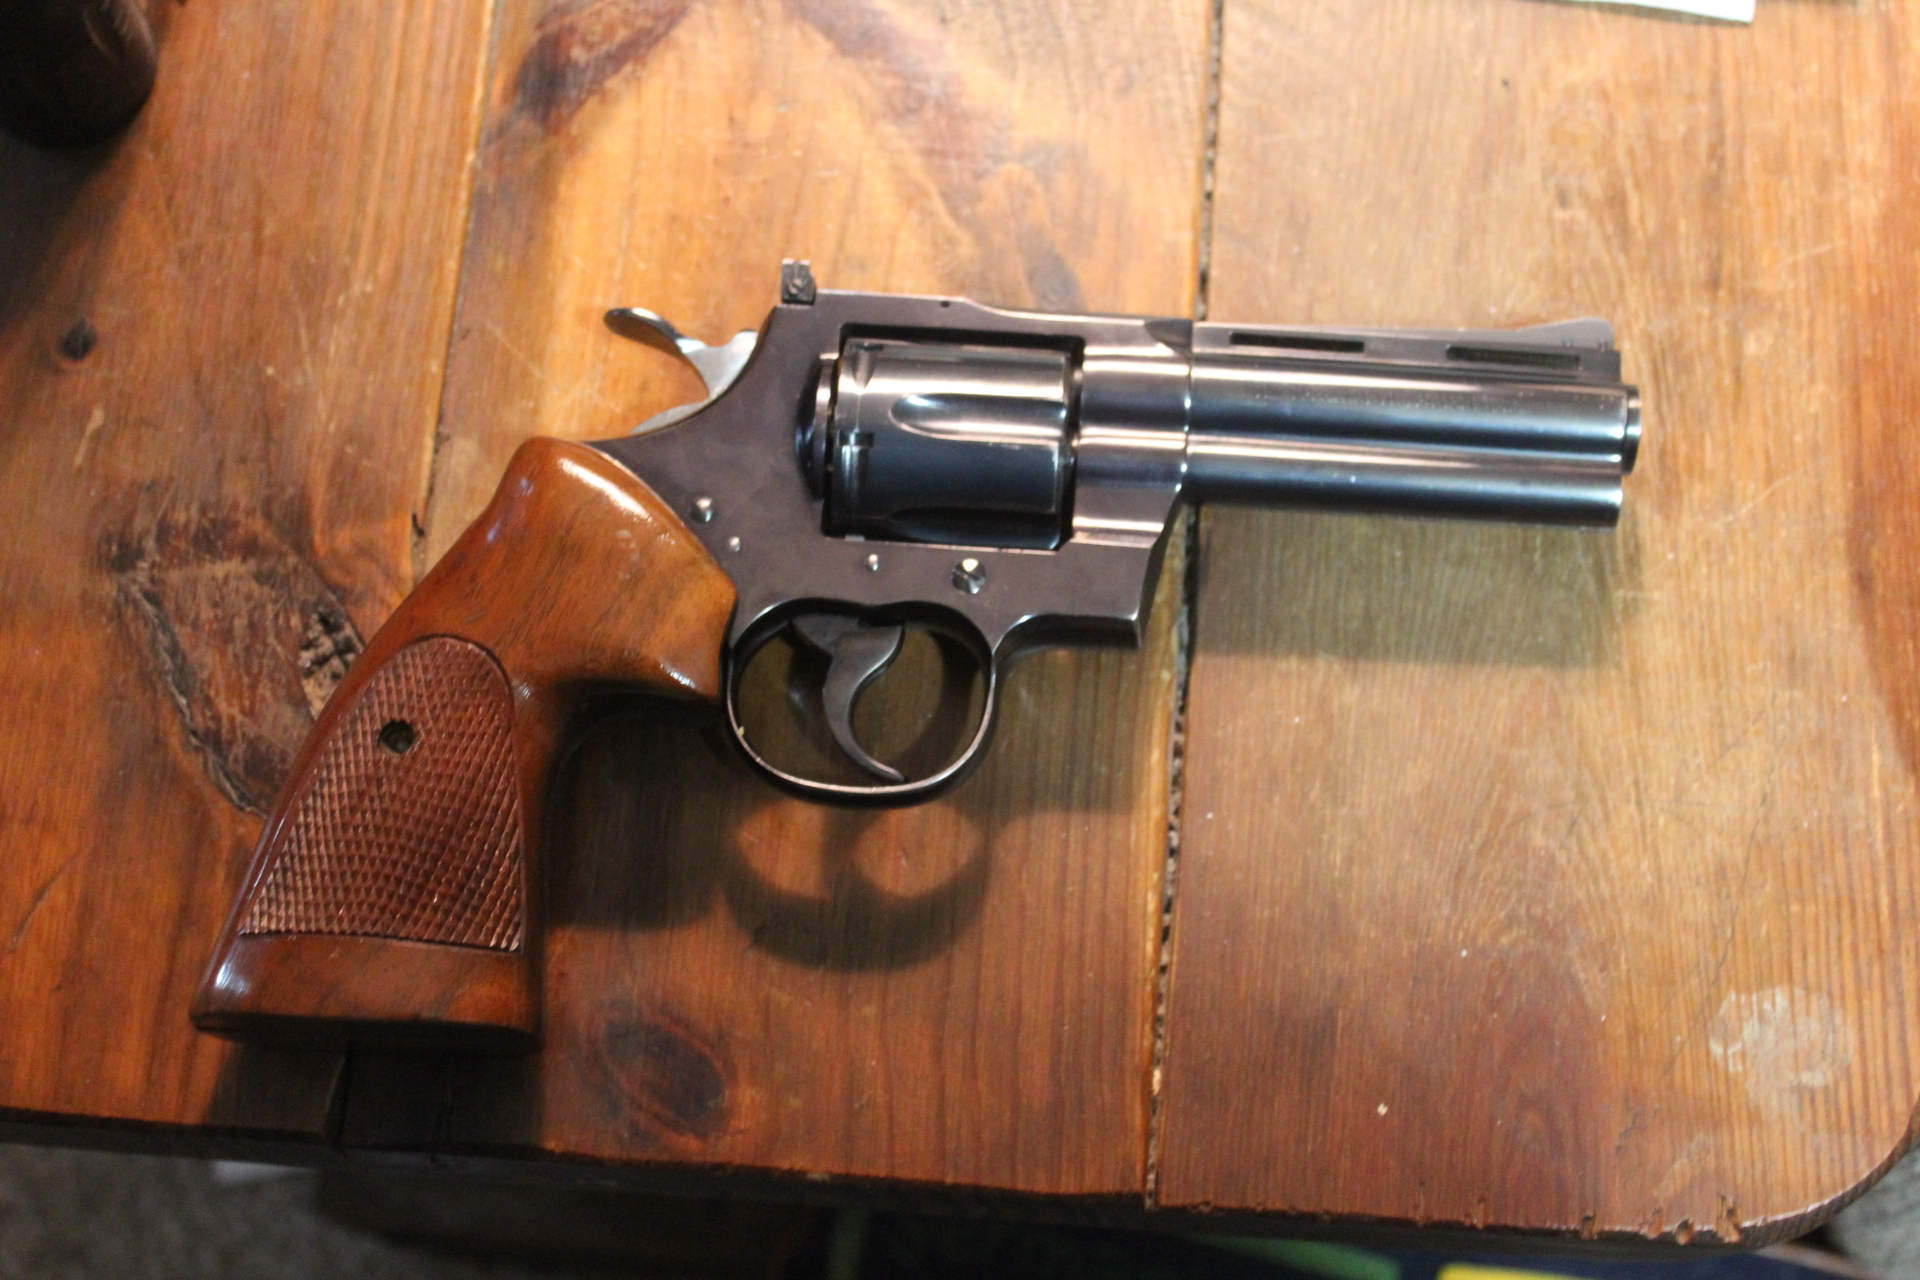 Share some Colt love - a picture thread-python_r.jpg